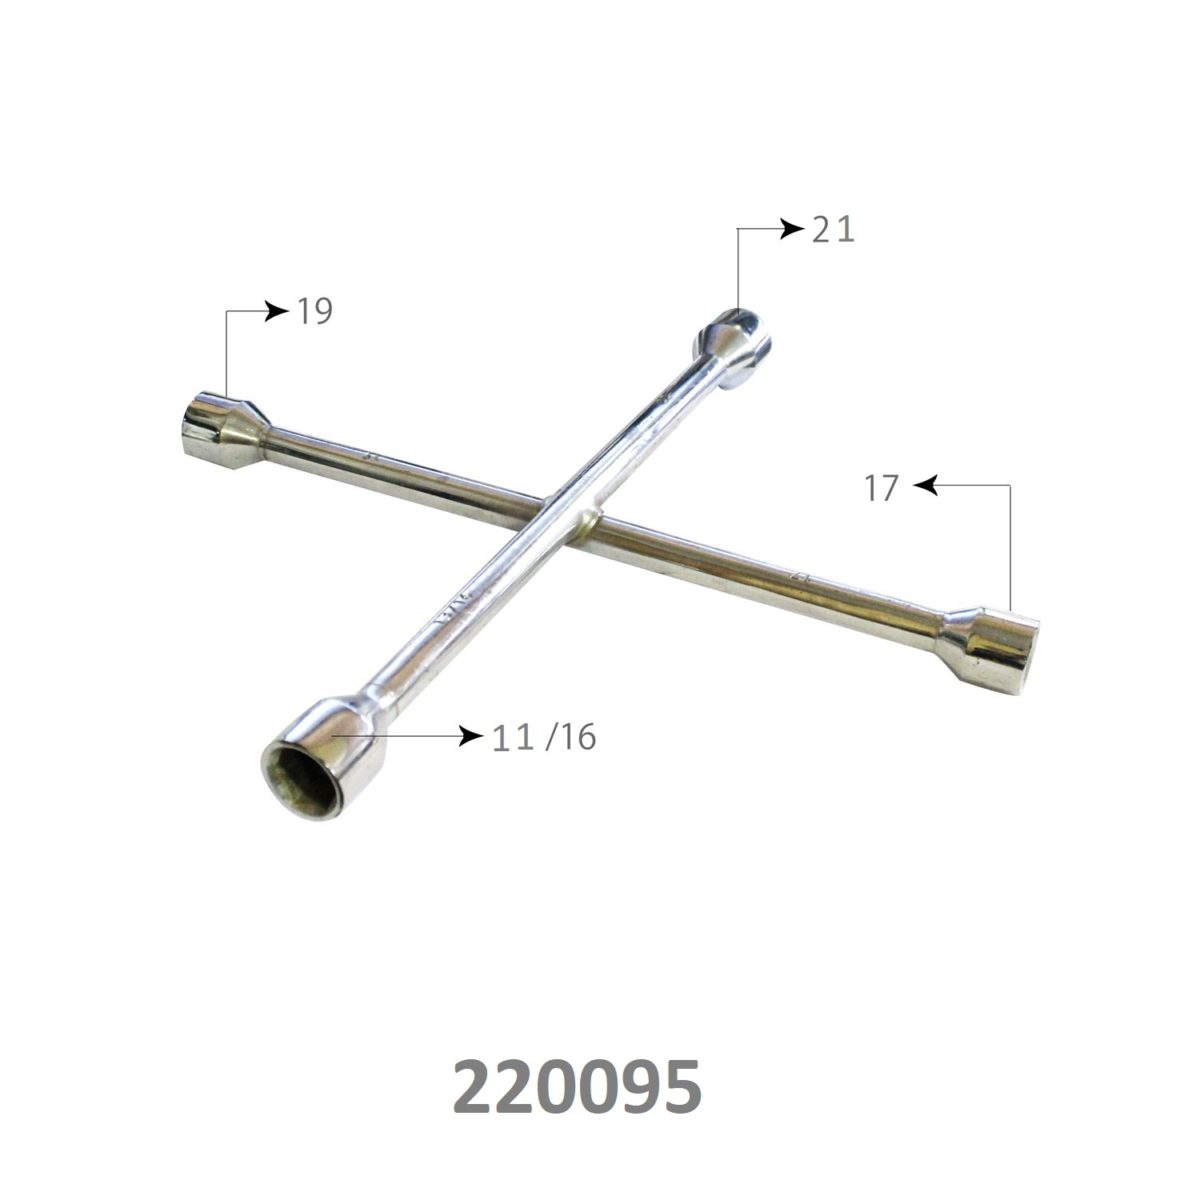 SARV Universal 4 way Cross Hex ,Wheel Nut Wrench 17mm X19mmx21mm x11/16″ ,Combination mm & SAE lug wrench